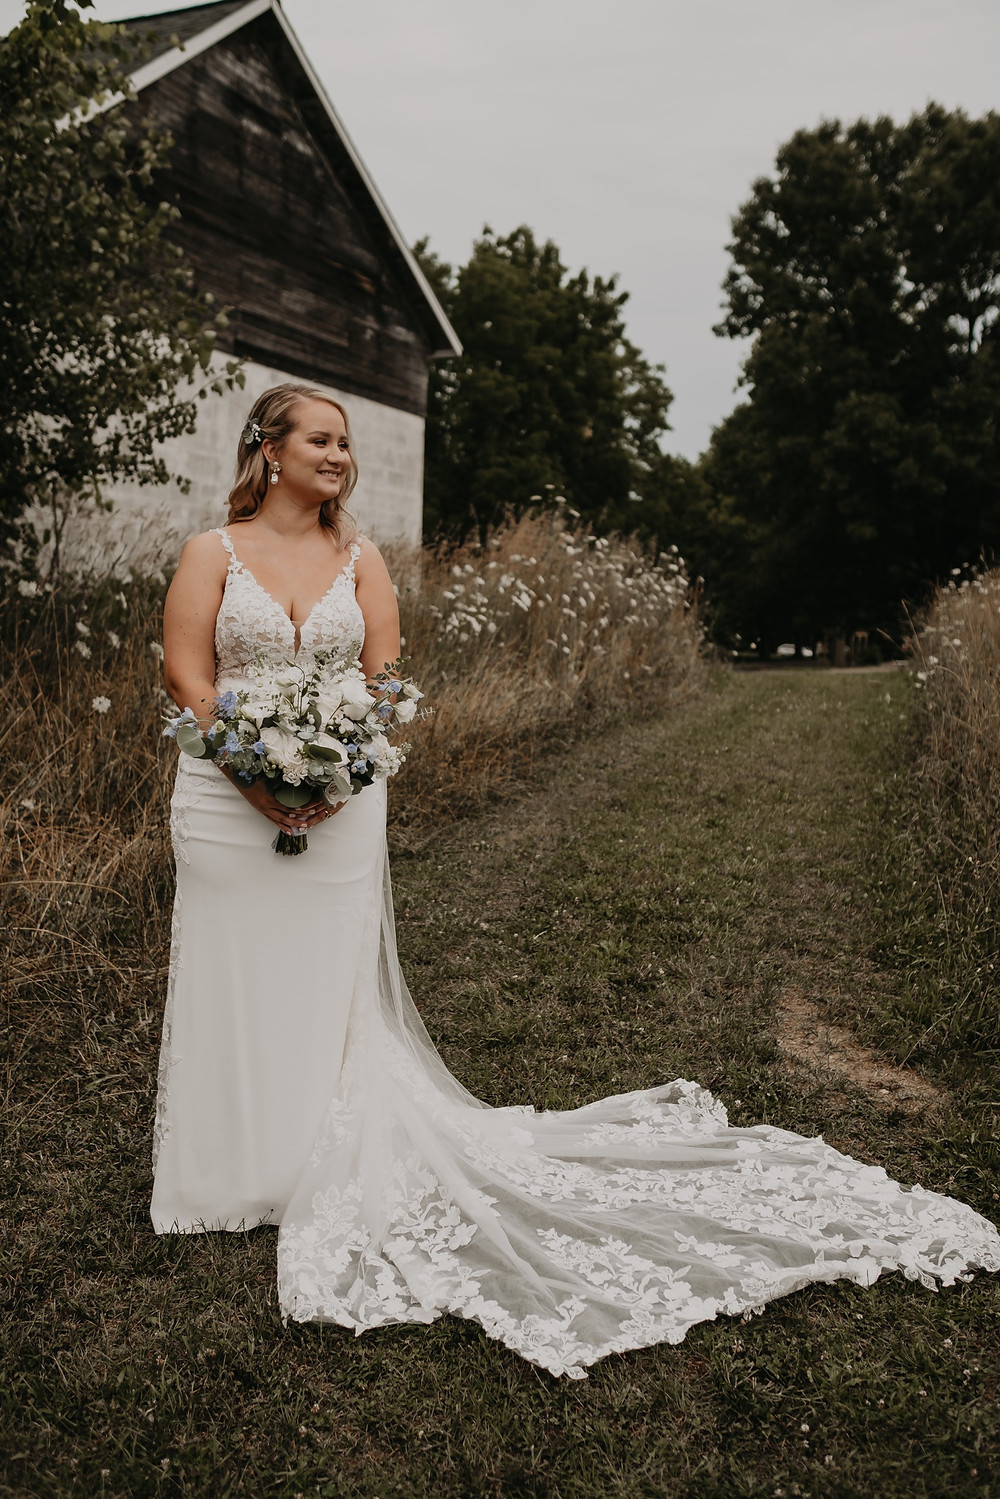 Bride holding wedding bouquet crafted by Love In Bloom at farm